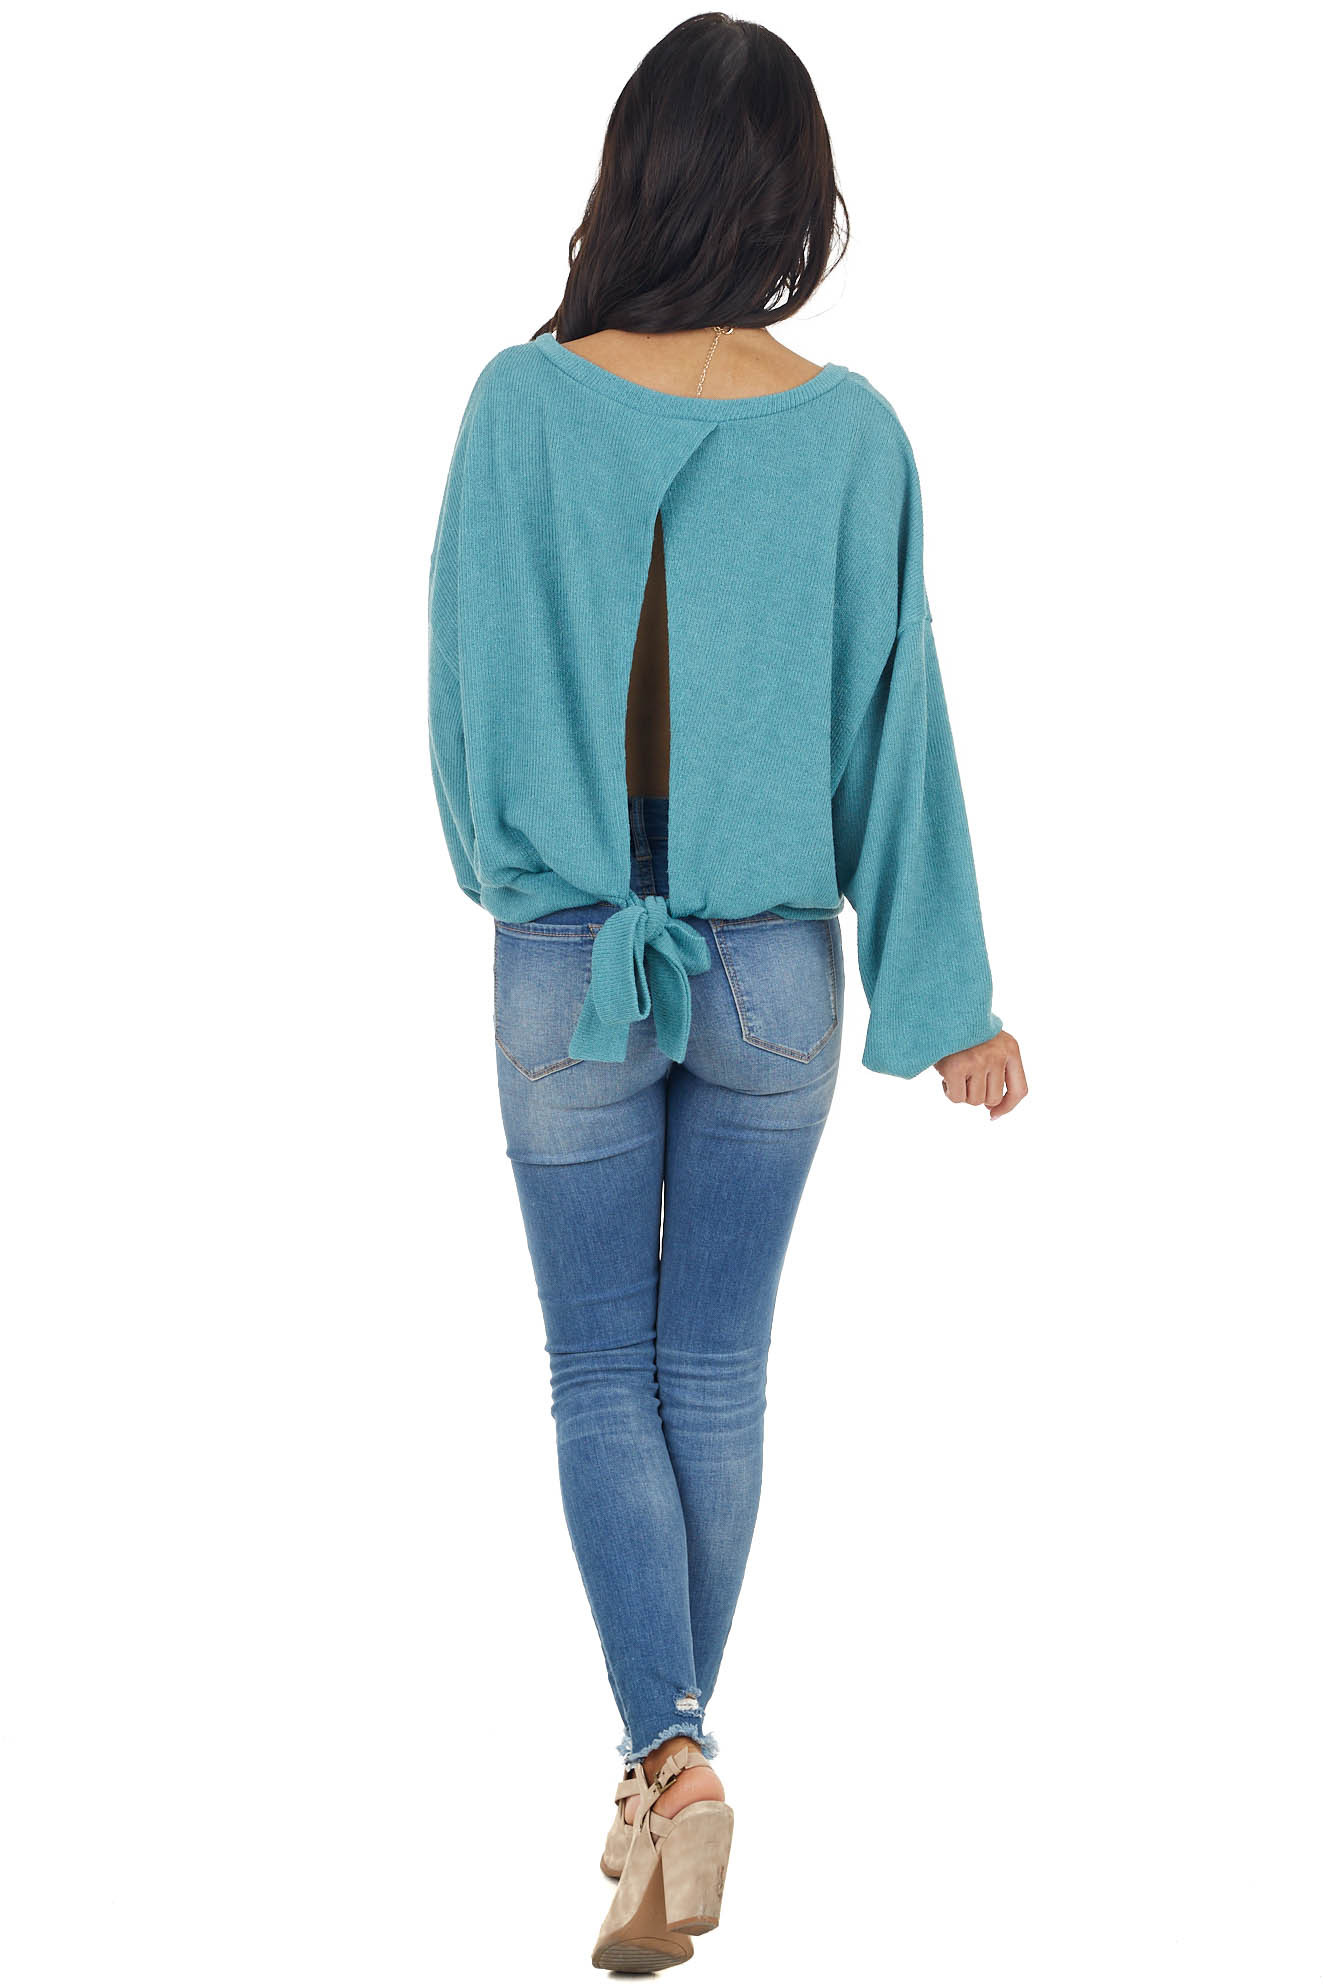 Dark teal Ribbed Knit Puff Sleeve Top with Open Back and Tie